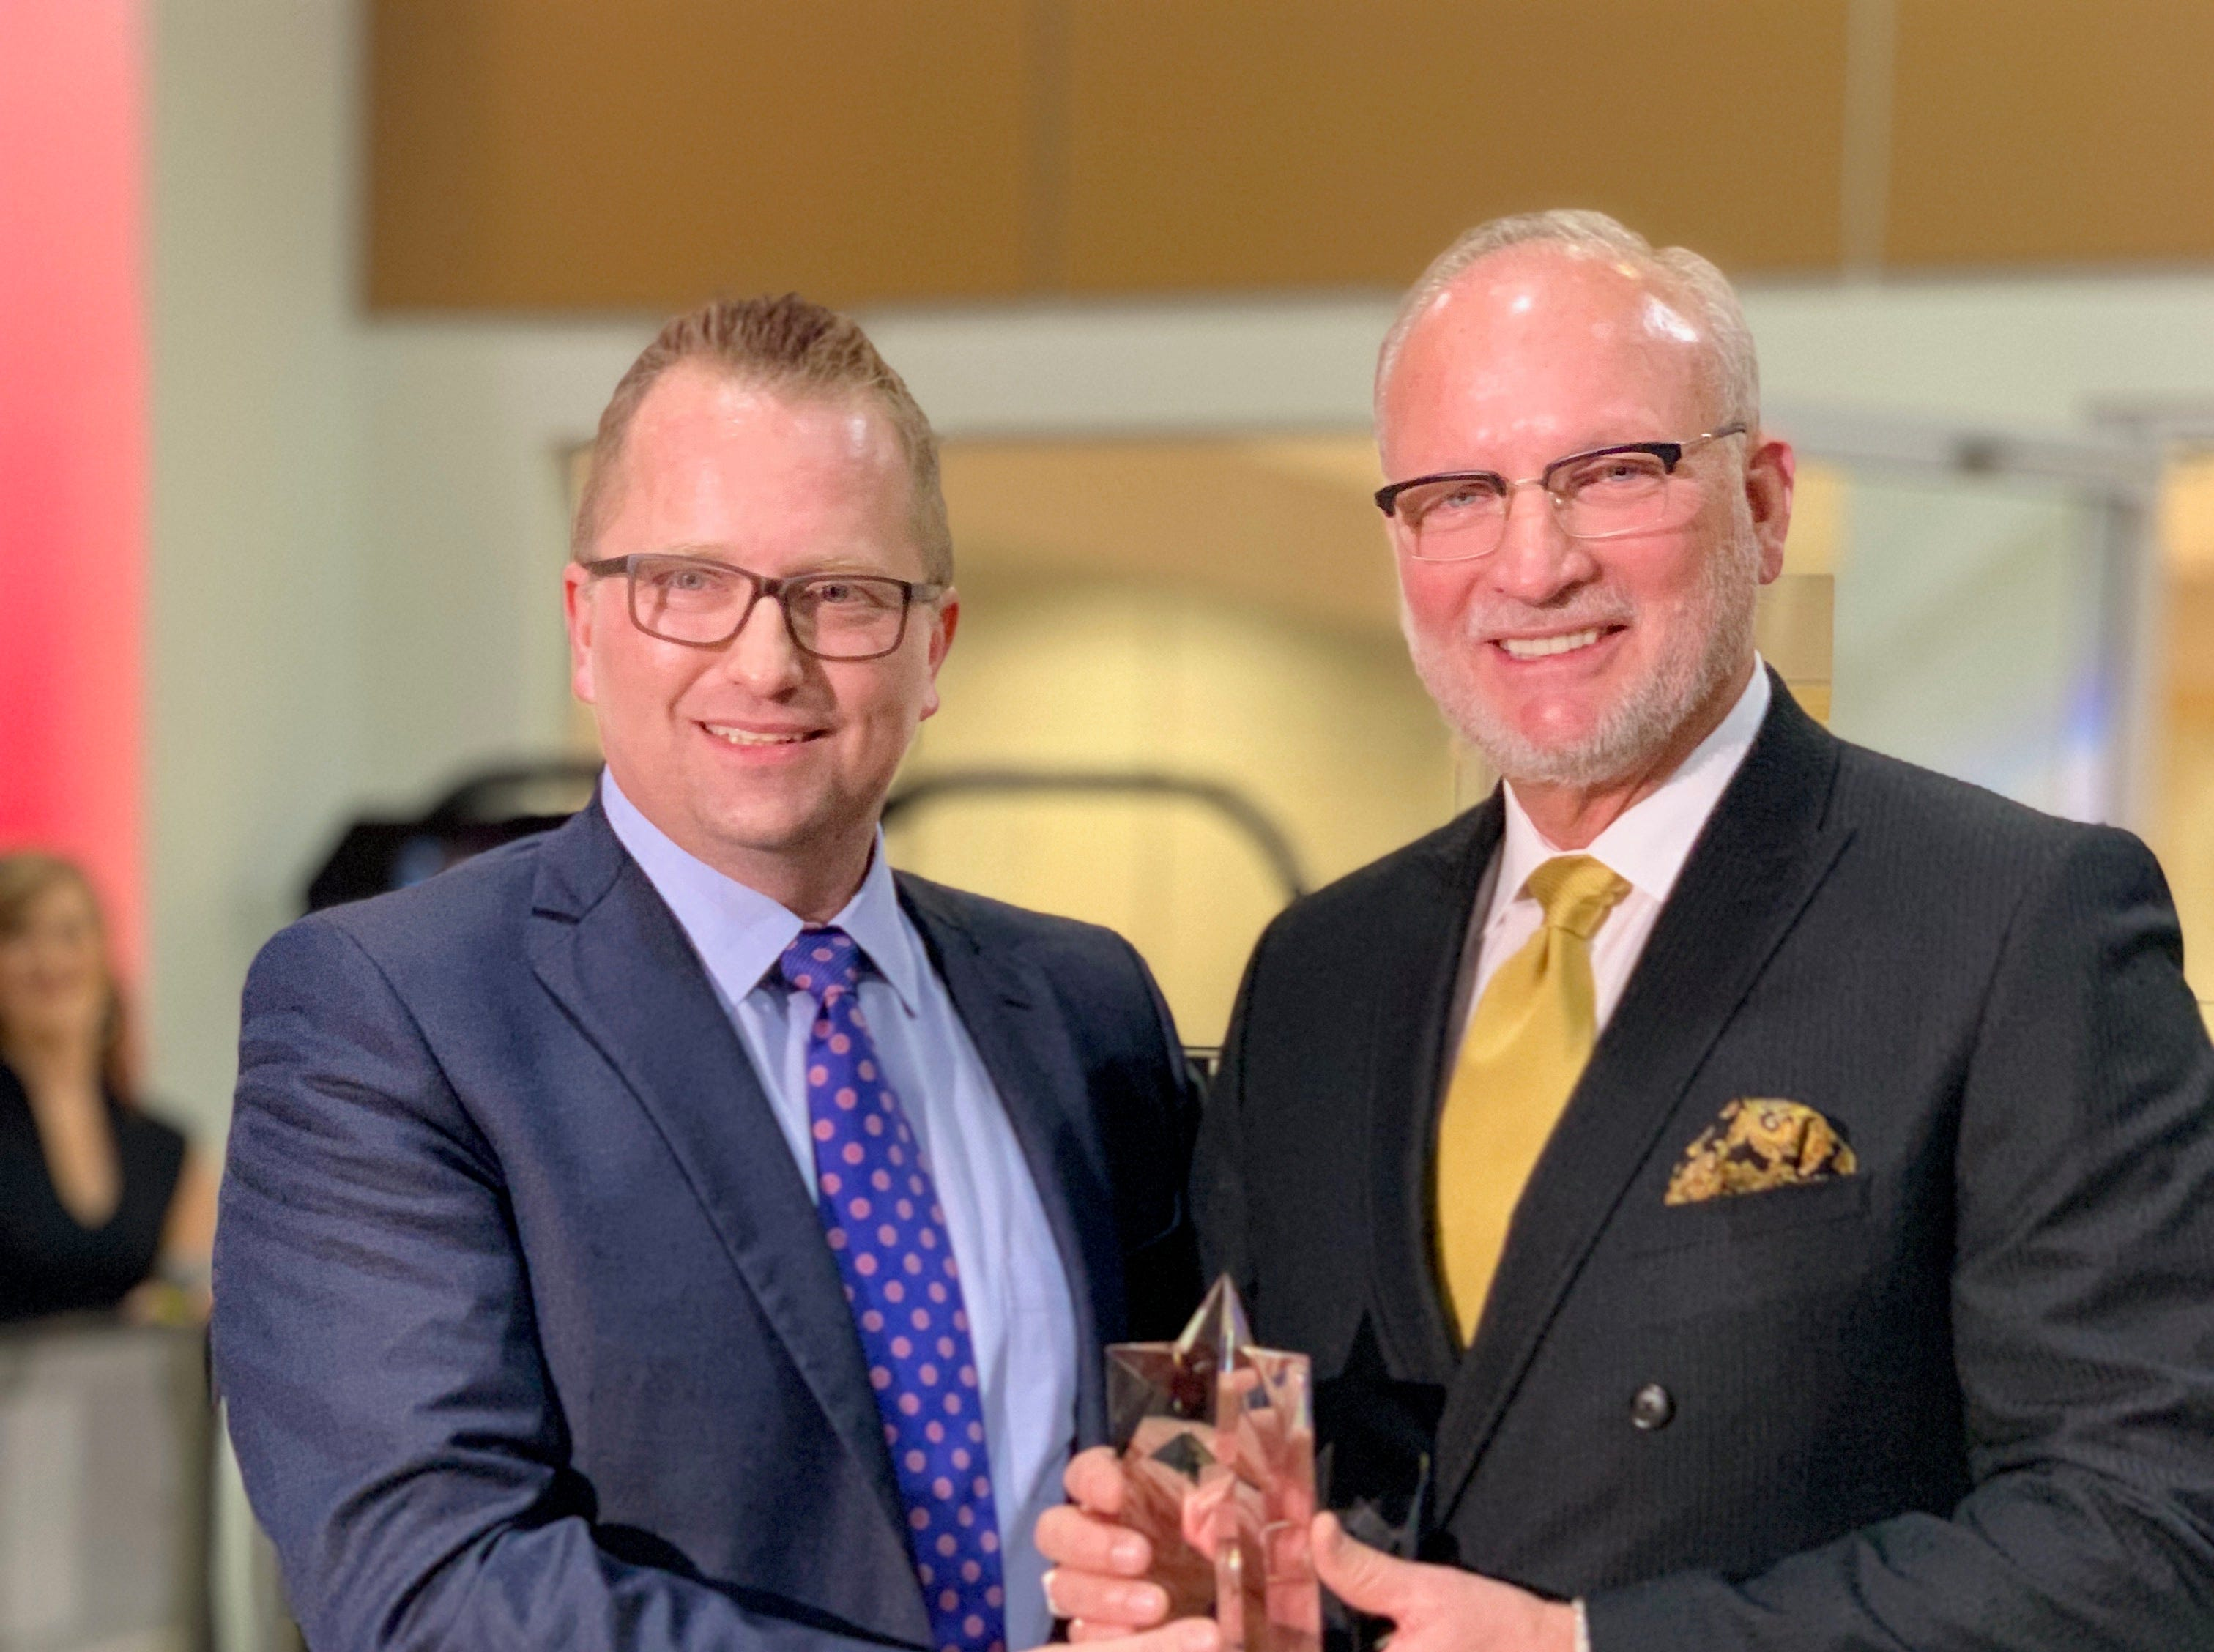 Shane Sizemore (left), Toyota Cincinnati Region general manager, recently presented a 25-year anniversary award to Doug White, general manager and co-owner of Toyota Knoxville in Tennessee. The award celebrates the dealer's commitment to Toyota and the community.